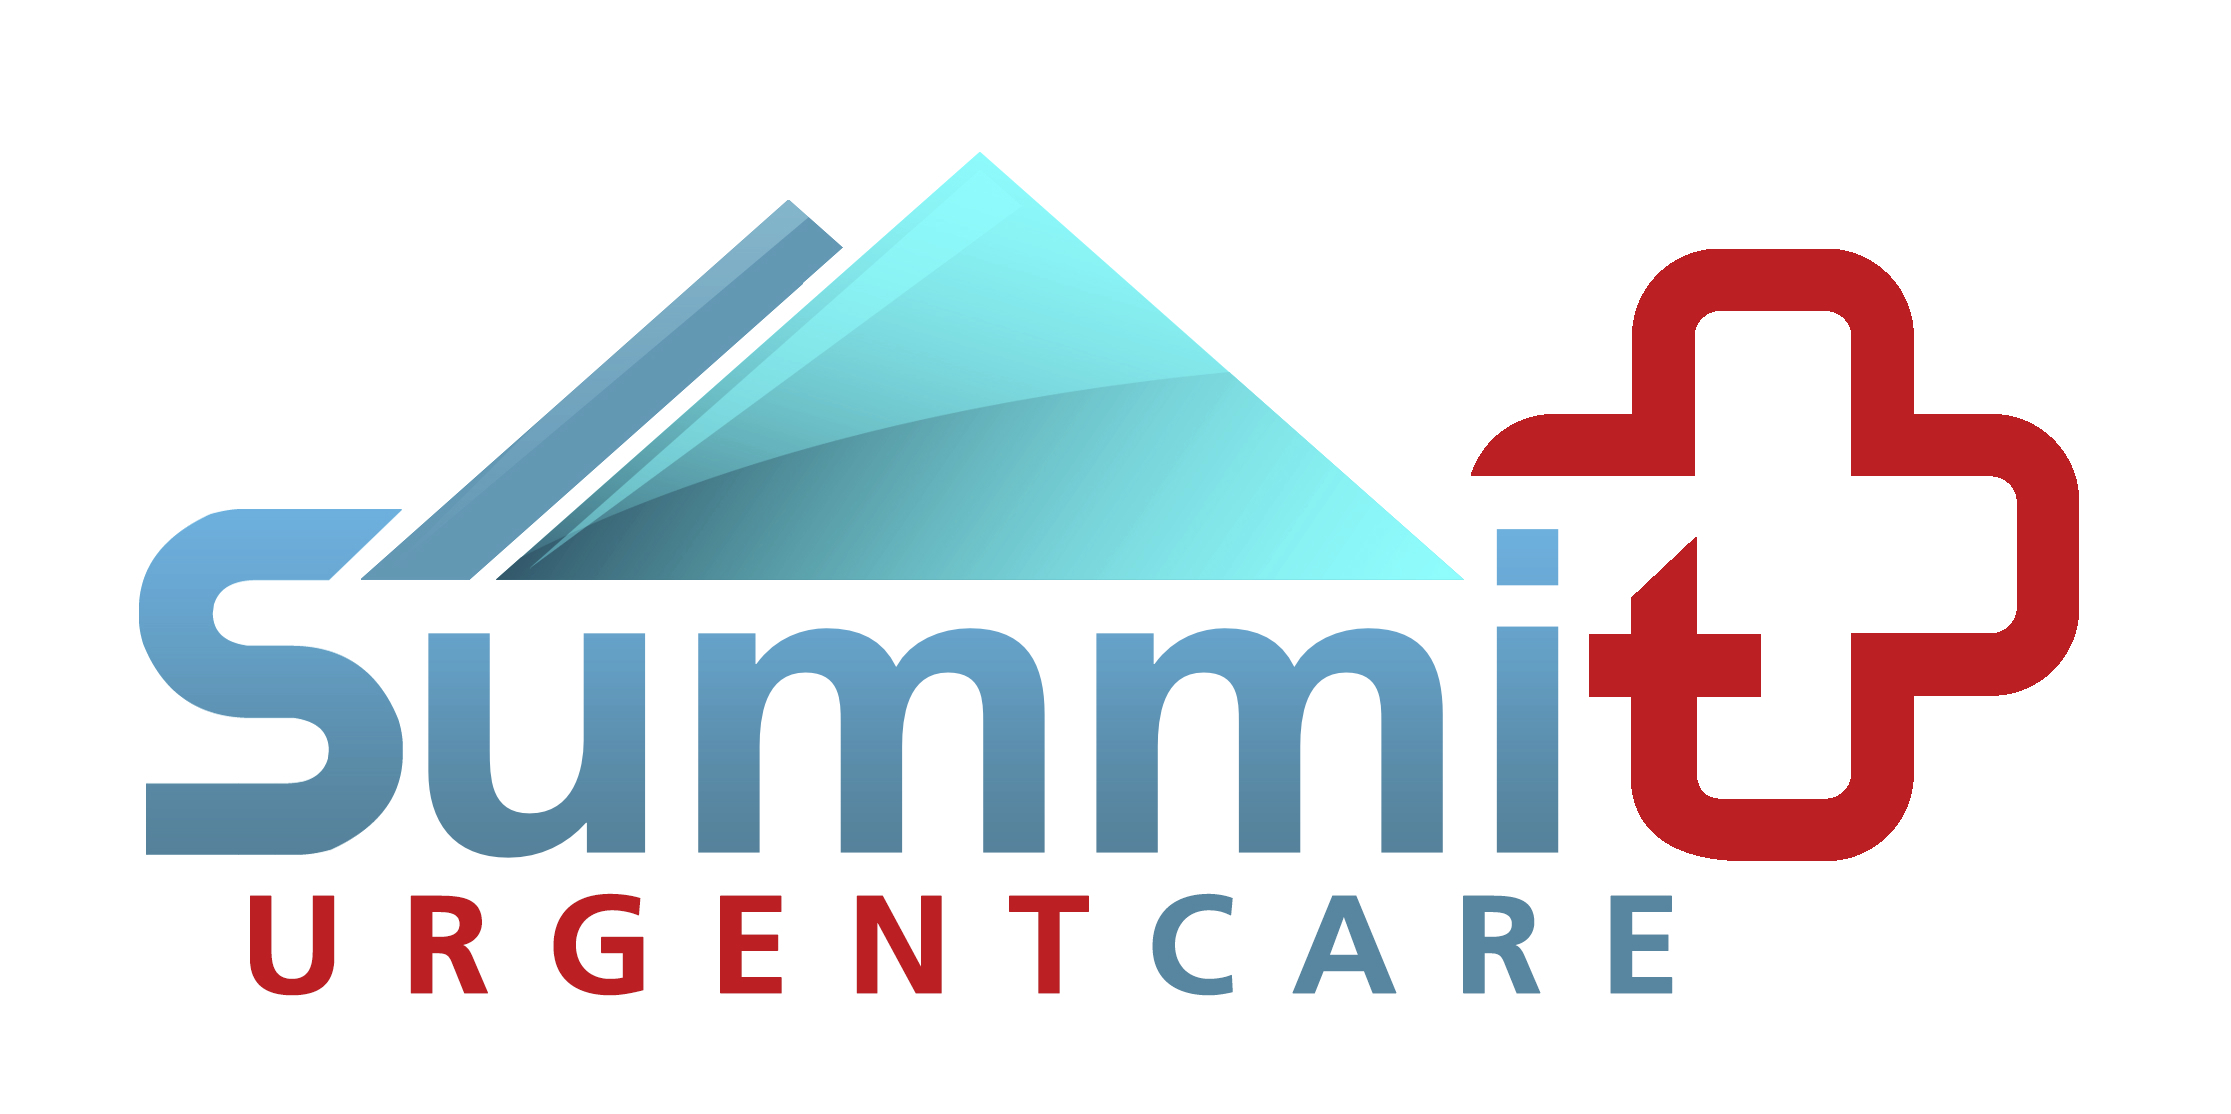 Summit Urgent Care